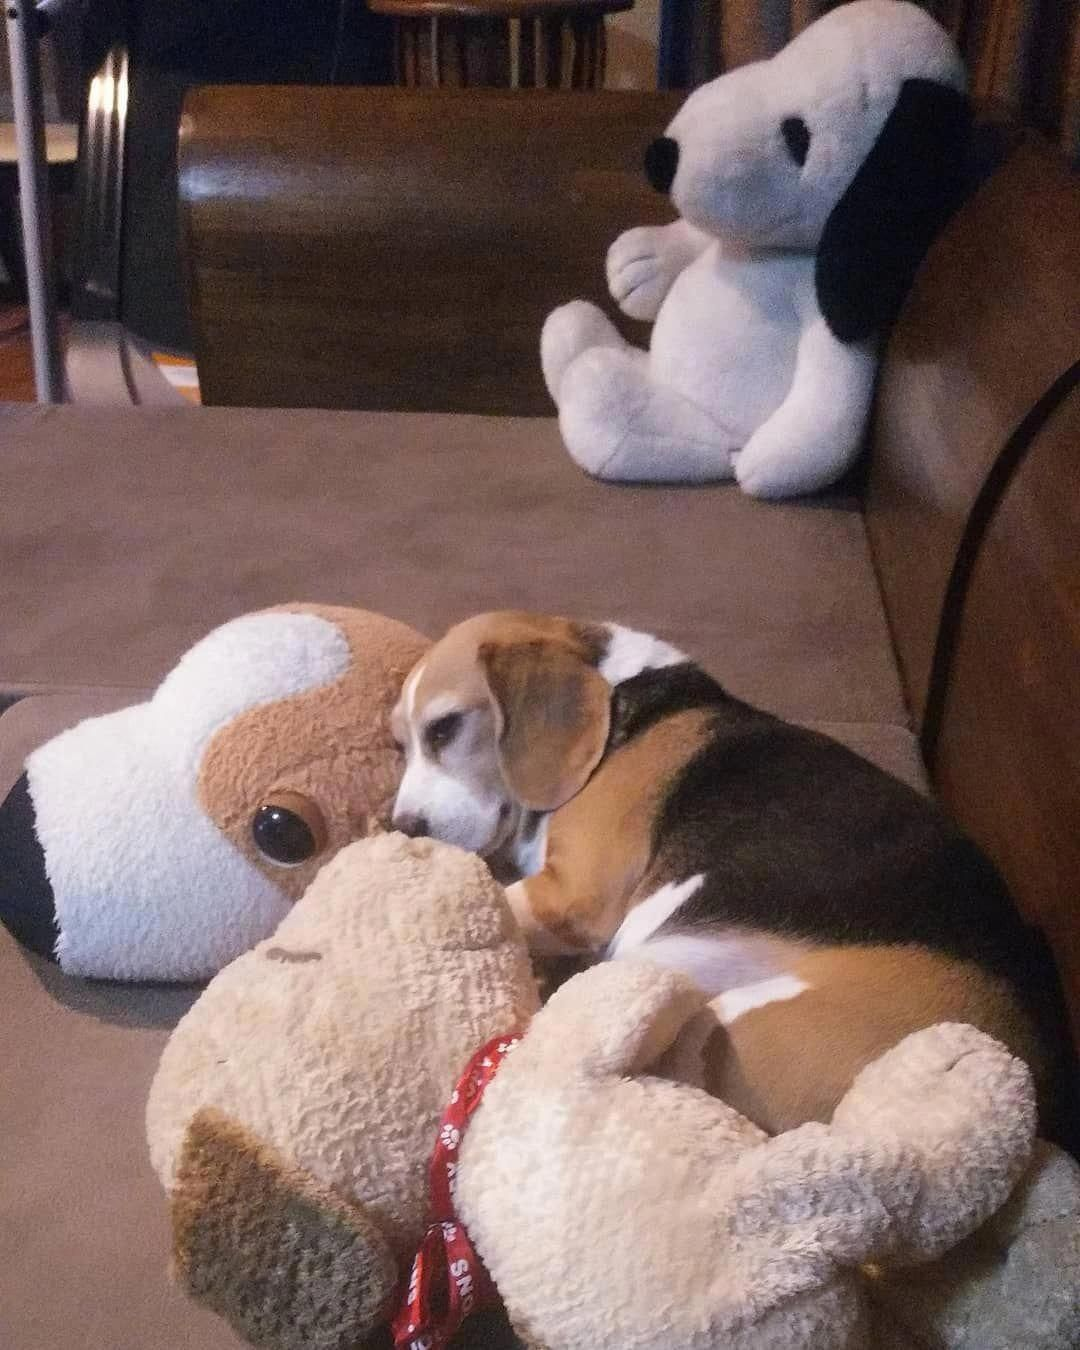 Pin By Kris Verrier On Beagles In 2020 Beagle Puppy Cute Dogs